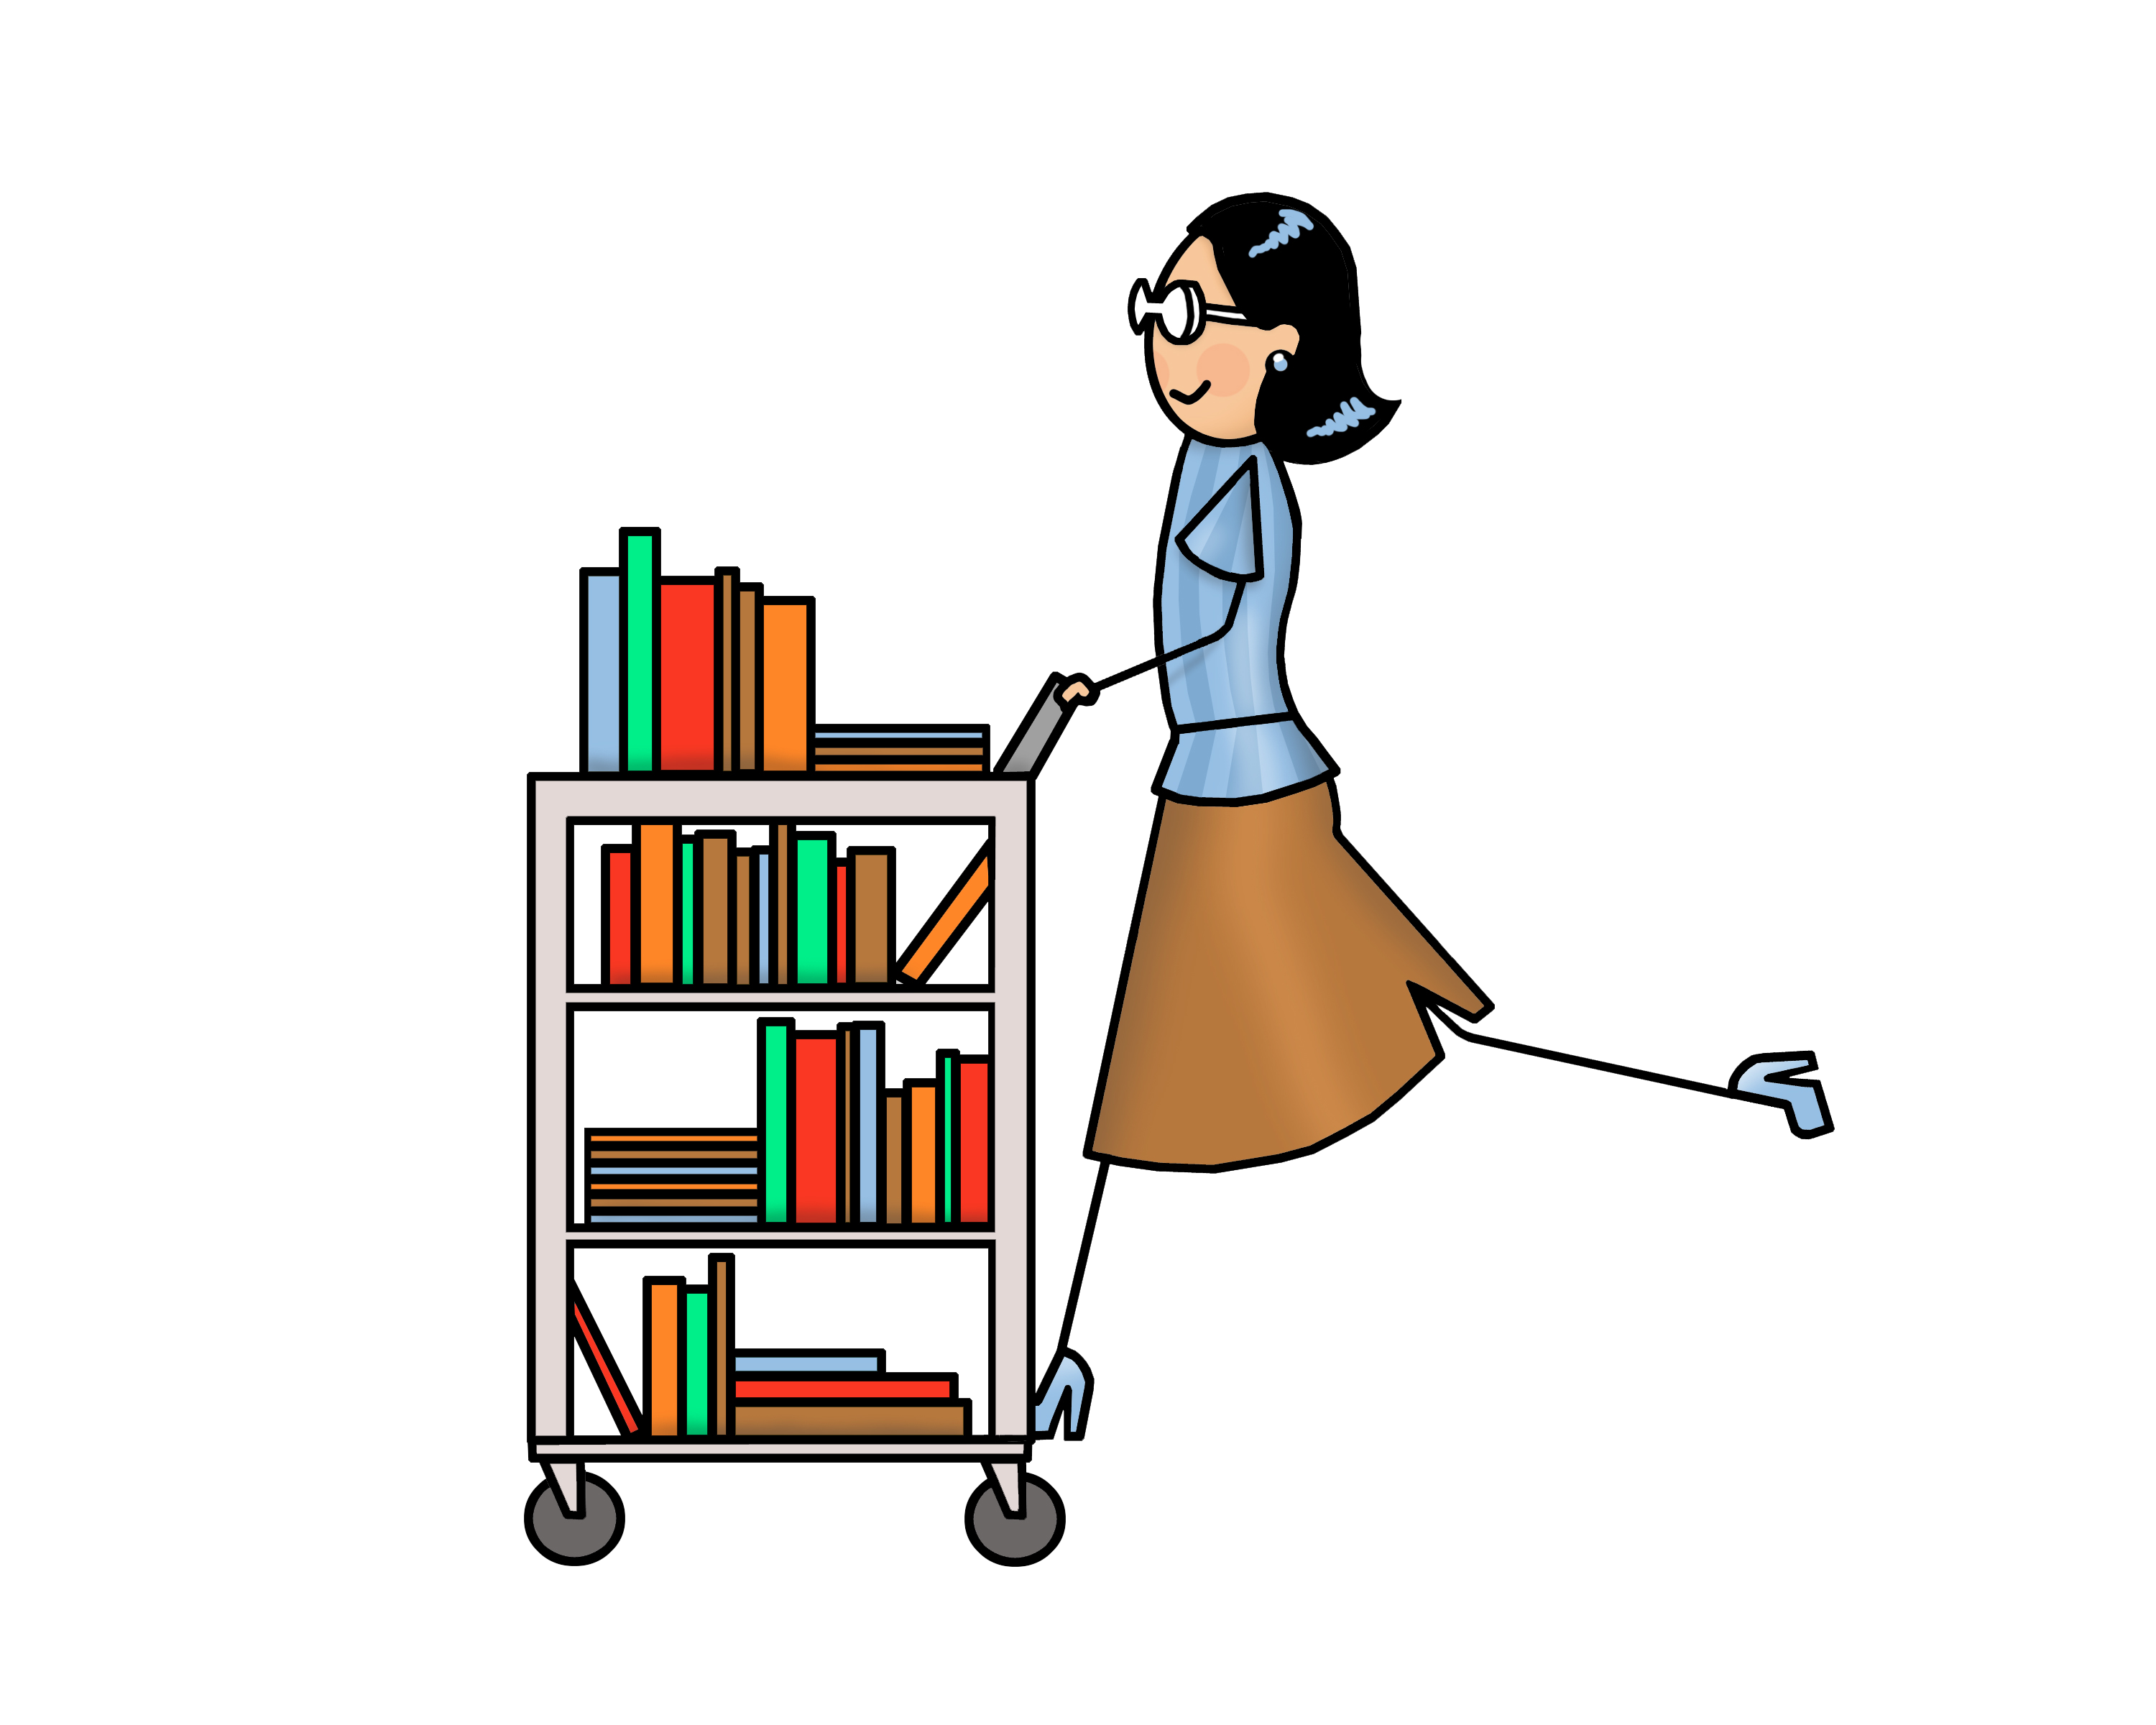 Library images clip art. Librarian clipart book cart